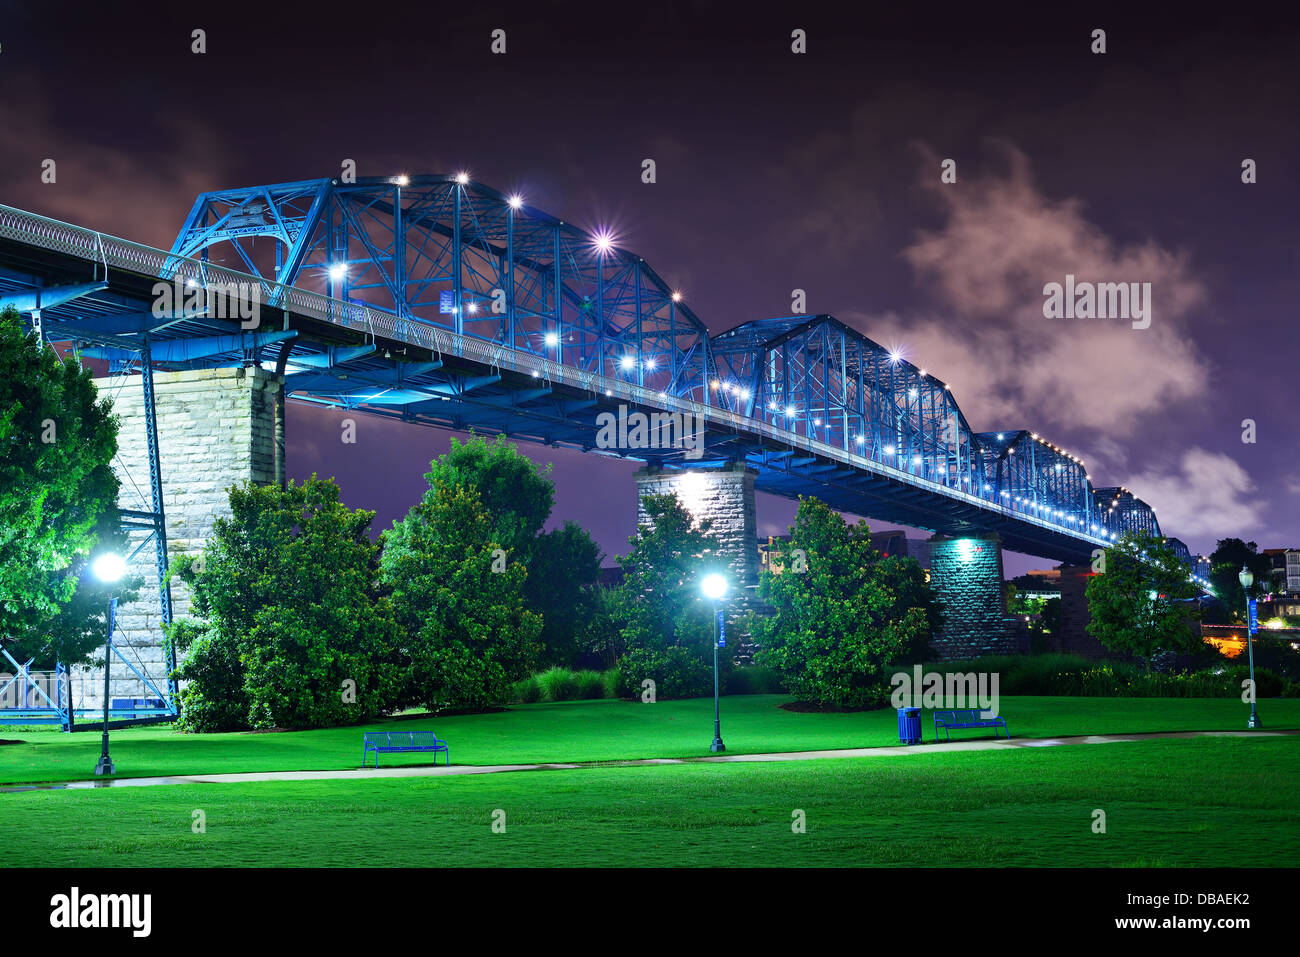 Walnut Street Bridge over Coolidge Park a Chattanooga, Tennessee. Immagini Stock